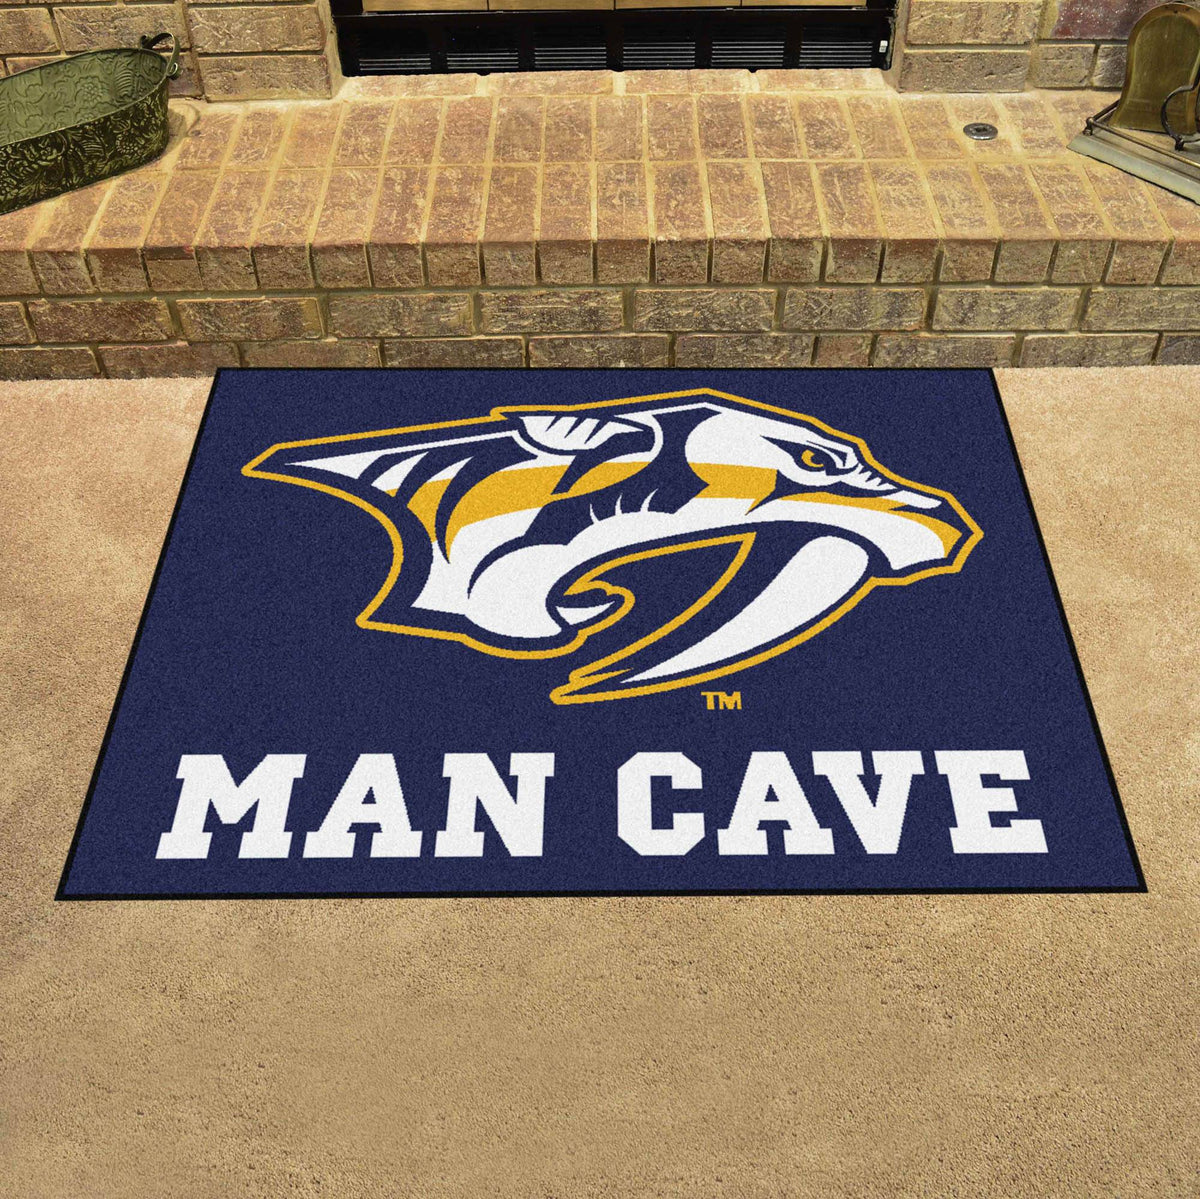 NHL - Man Cave All-Star NHL Mats, Rectangular Mats, Man Cave All-Star Mat, NHL, Home Fan Mats Nashville Predators